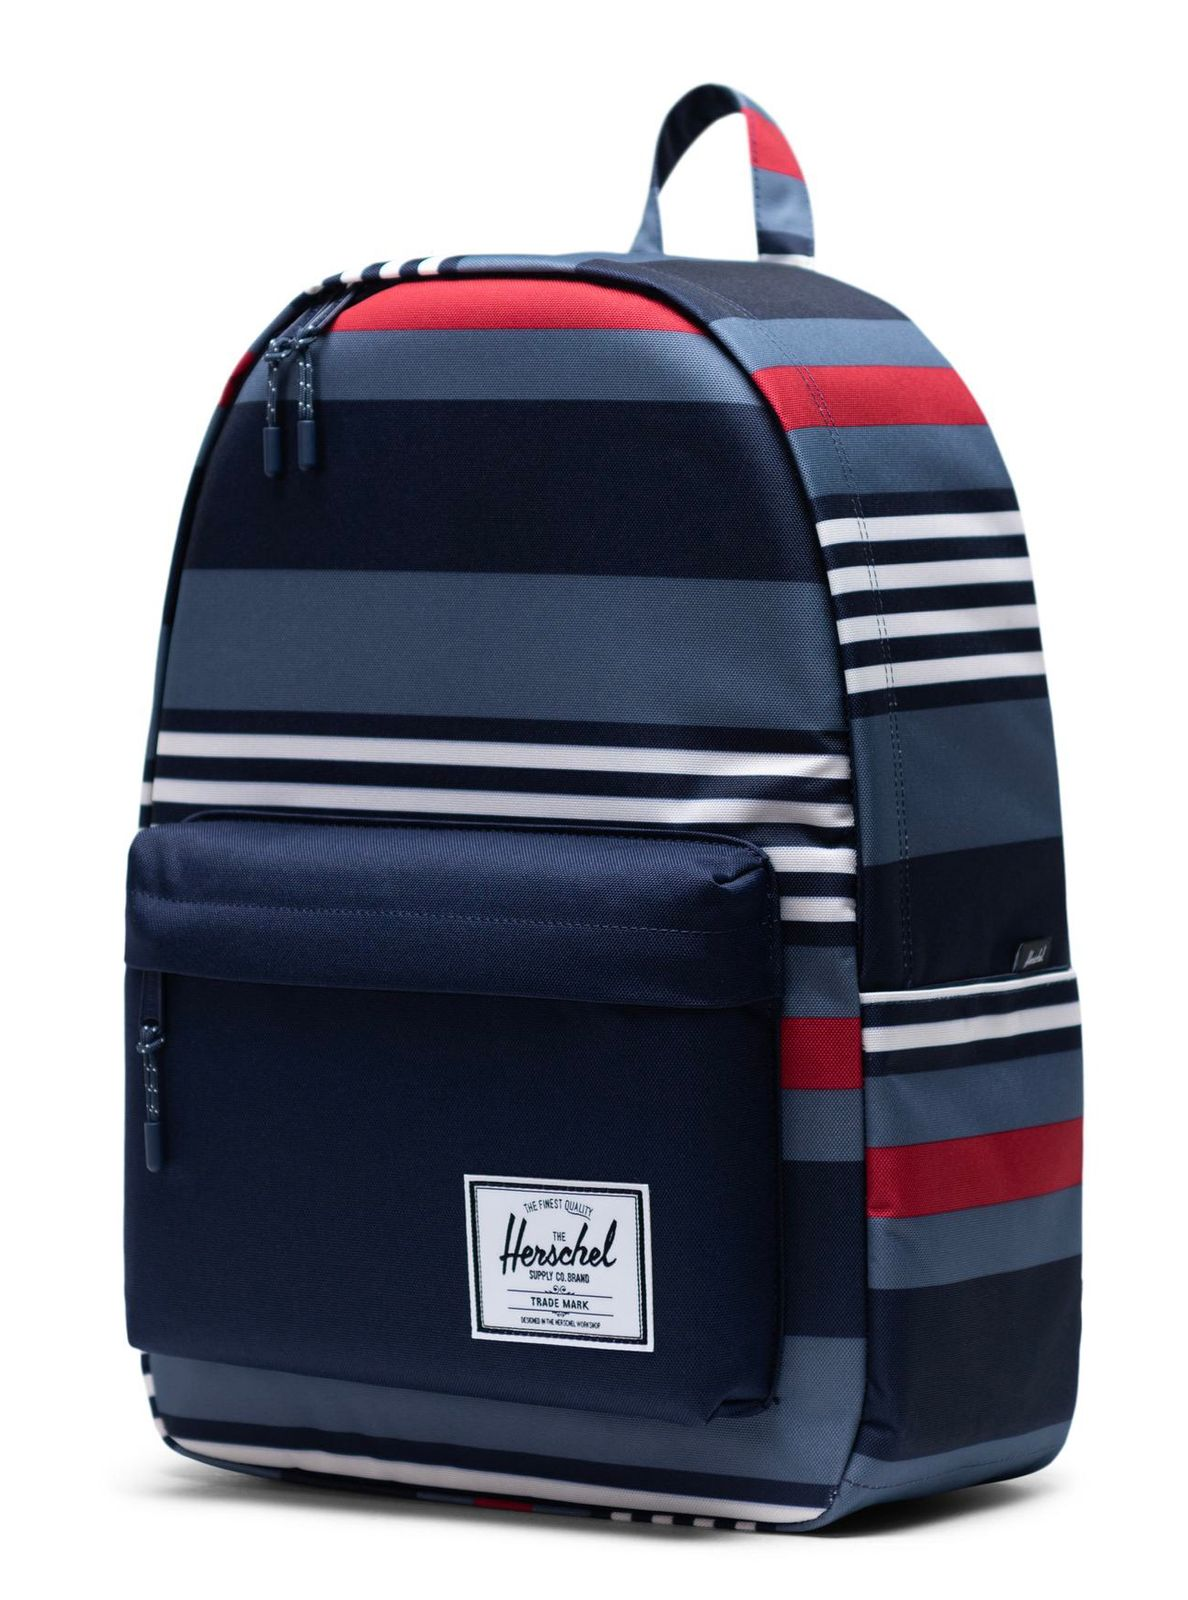 Herschel Classic X Large Backpack Malibu Stripe Peacoat